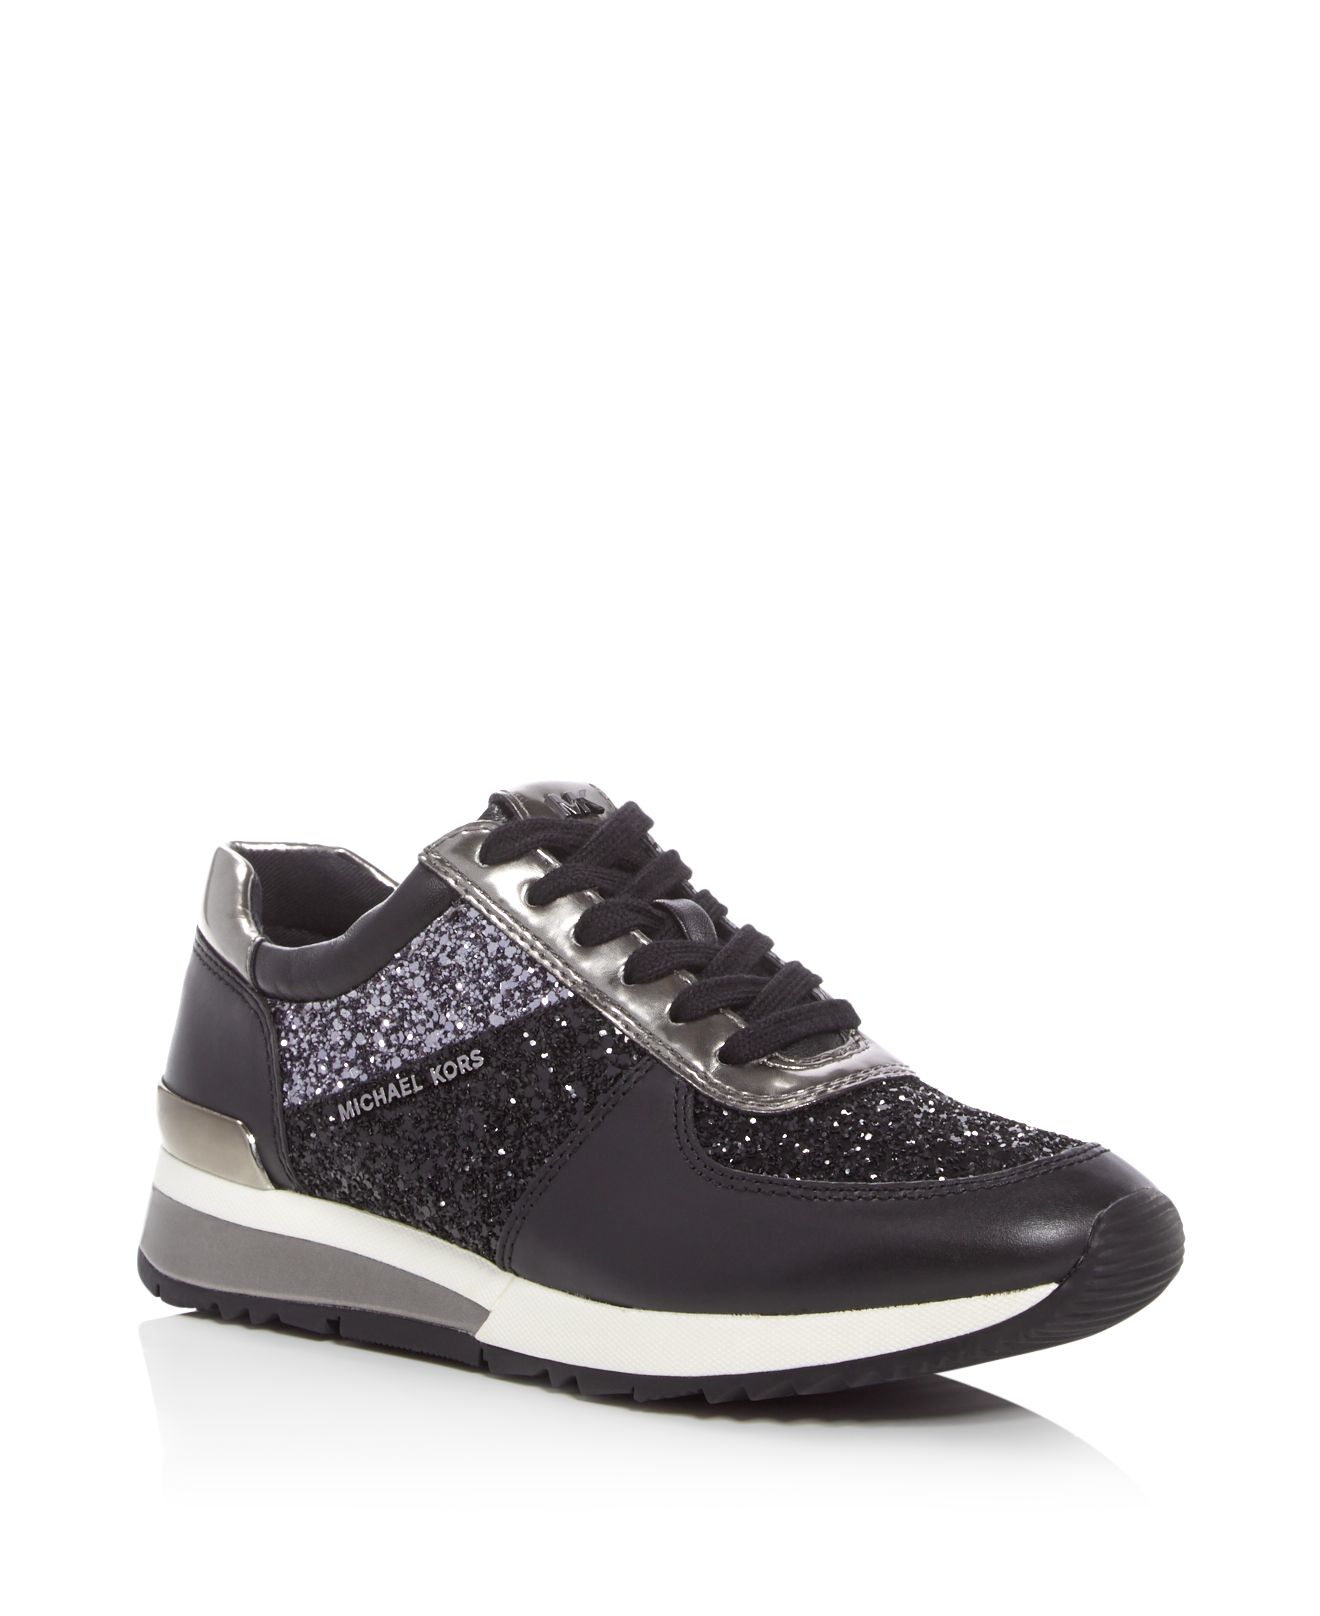 Michael Michael Kors Allie Glitter Lace Up Sneakers In